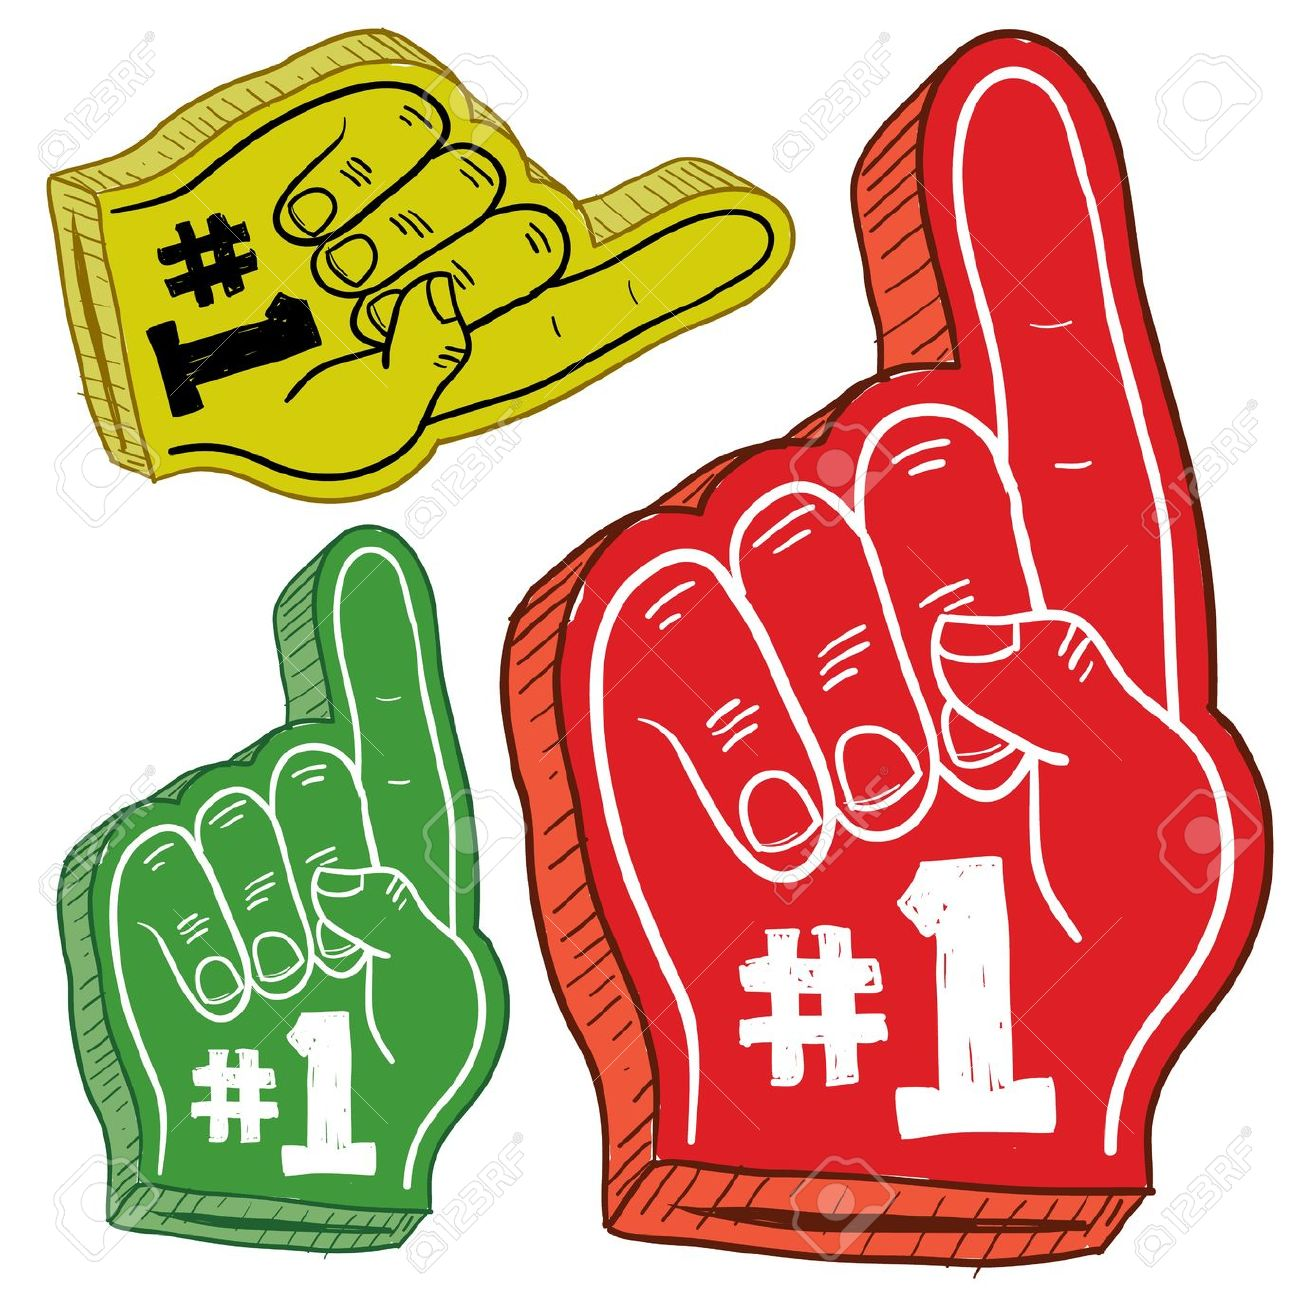 Doodle Style Colorful Foam Fingers Used At Stadiums And Ballparks.